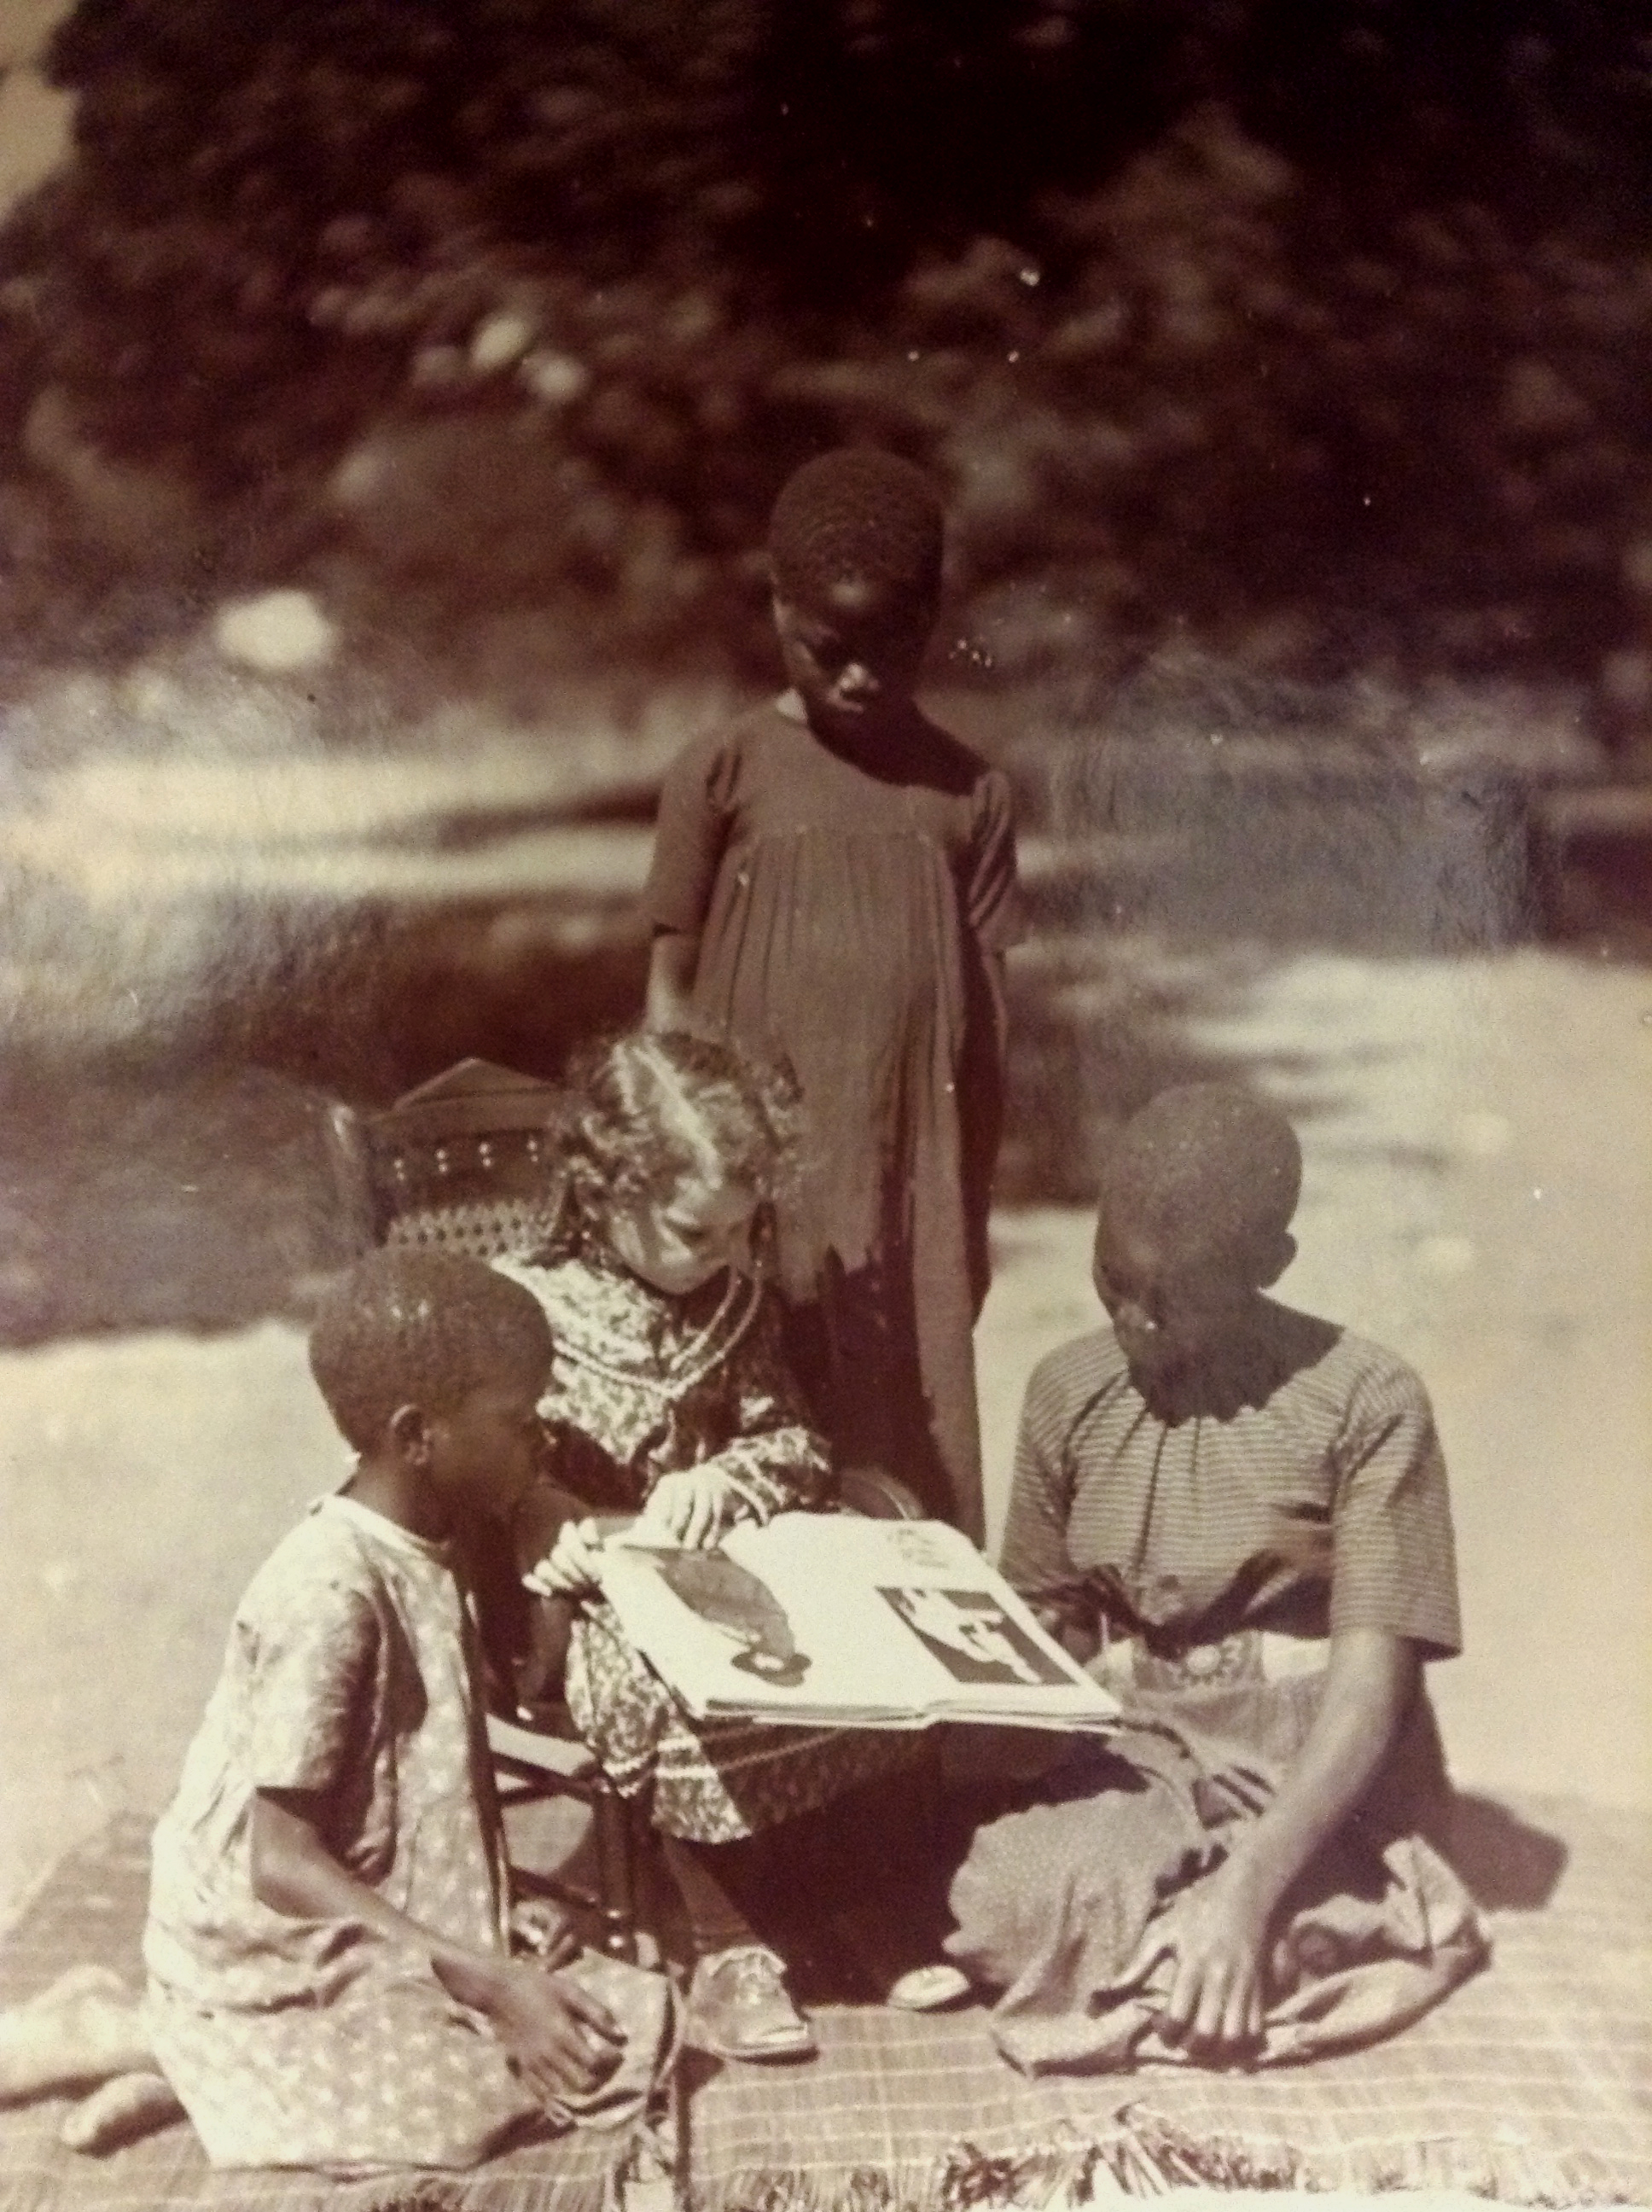 1906 photograph of Erwin H Richards' daughter, Dorothy, and three African girls